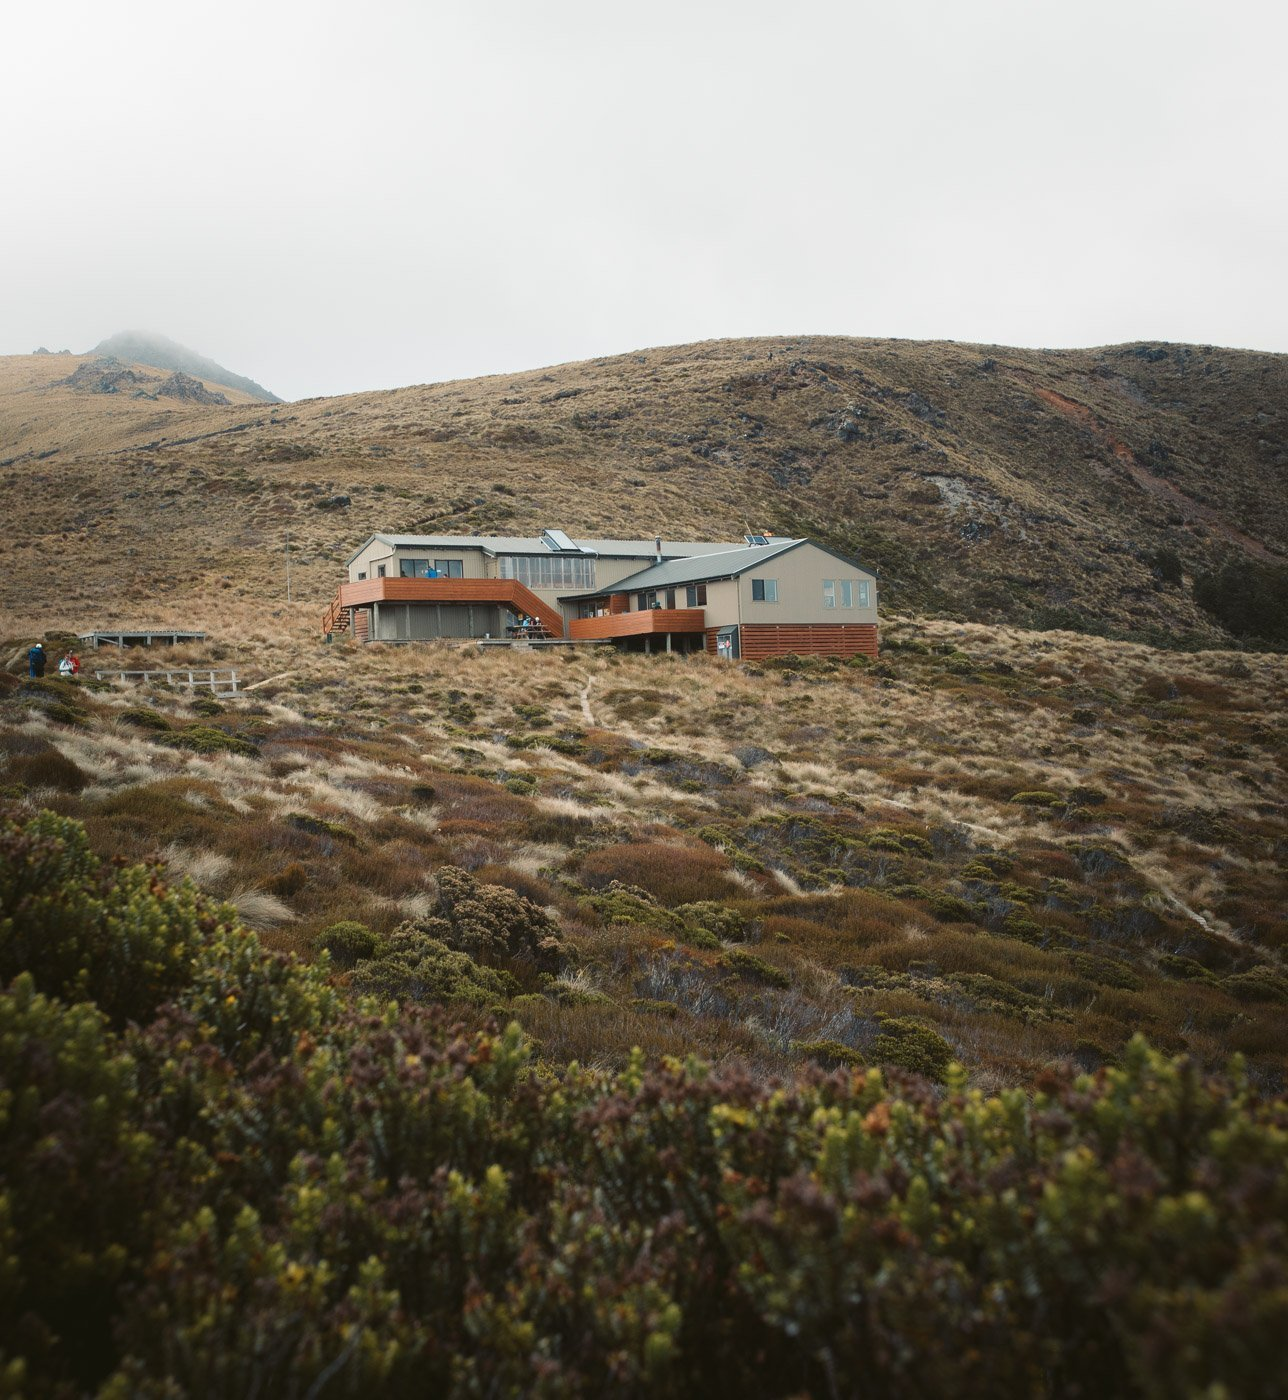 LUXMORE HUT ON THE KEPLER TRACK